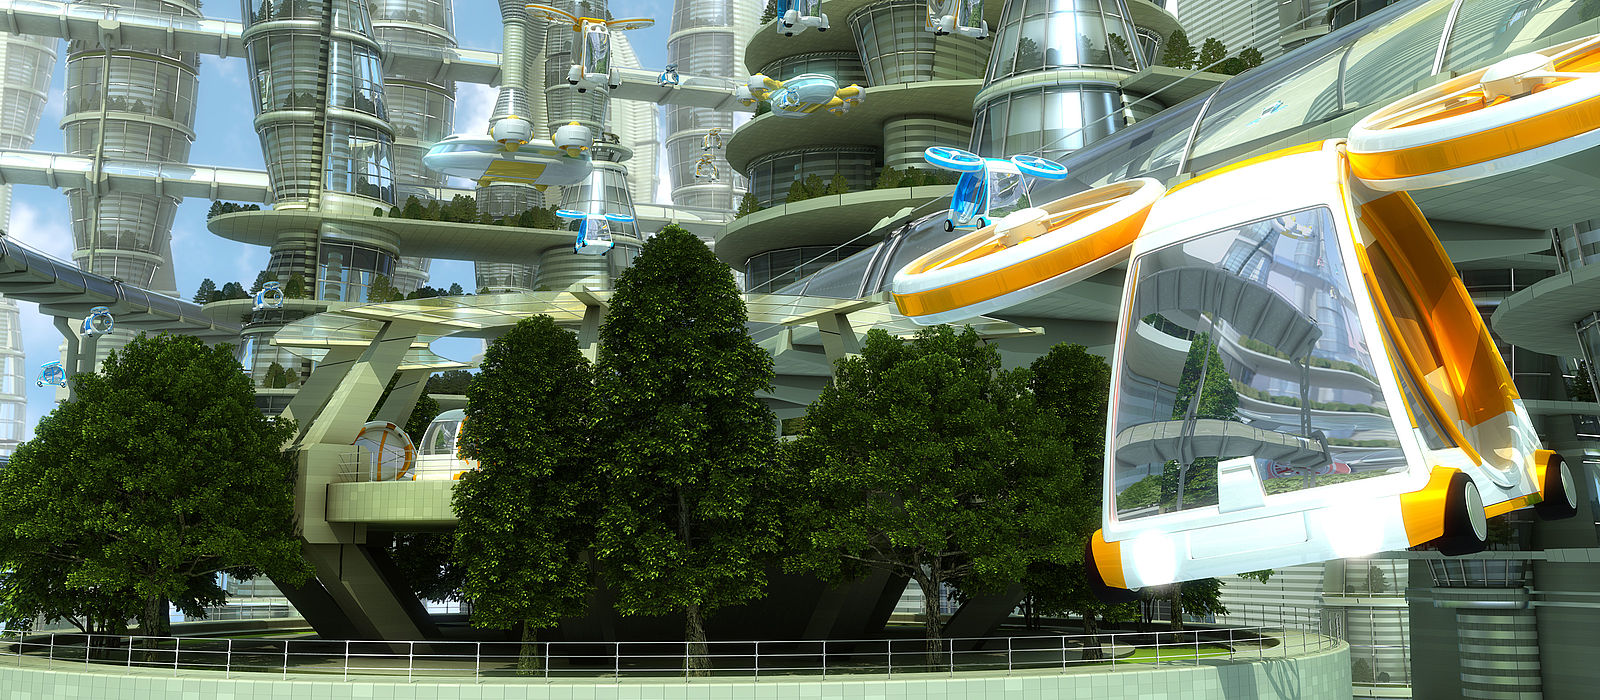 visualization of a green city of the future with colorful flying objects for transportation